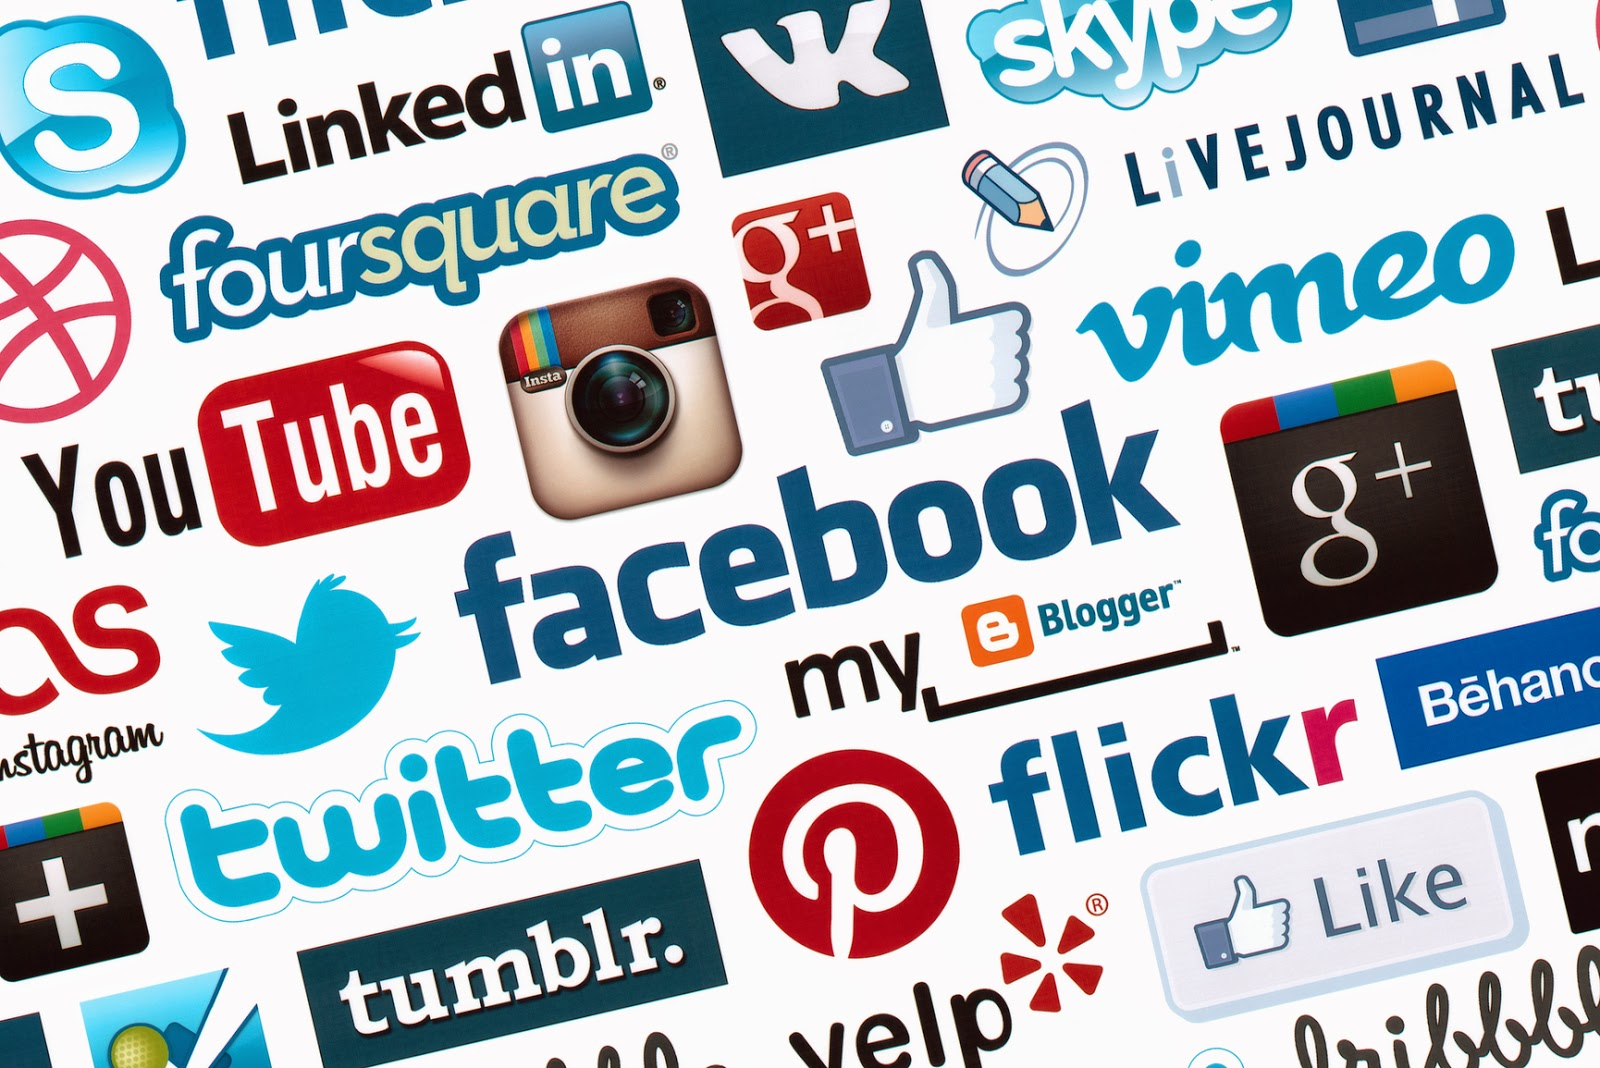 Your social media page can be used against you in court